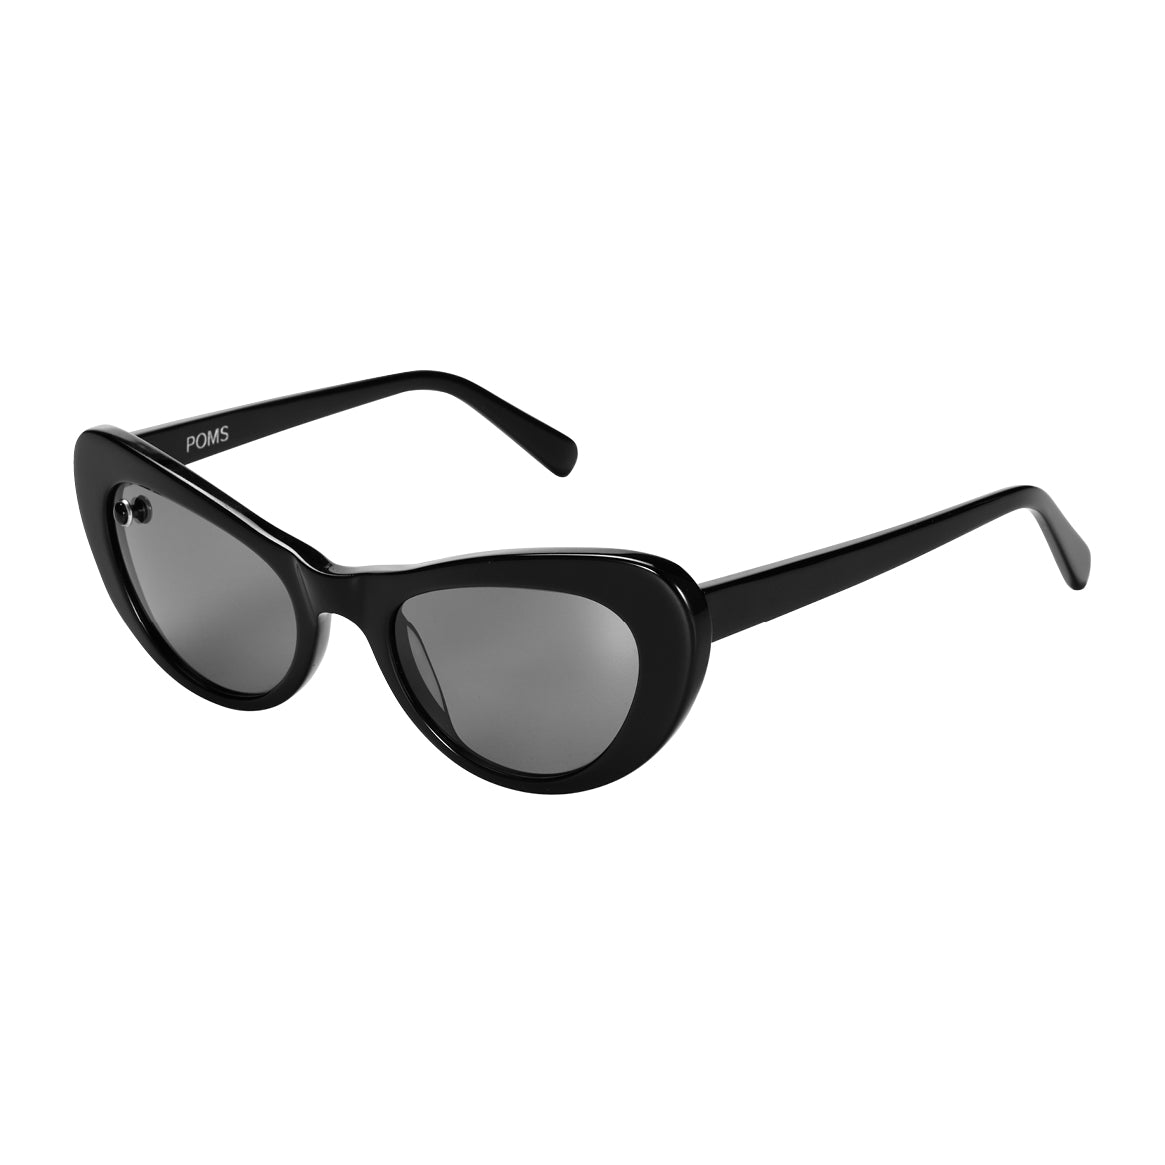 Nuovo Black & Black Sunglasses